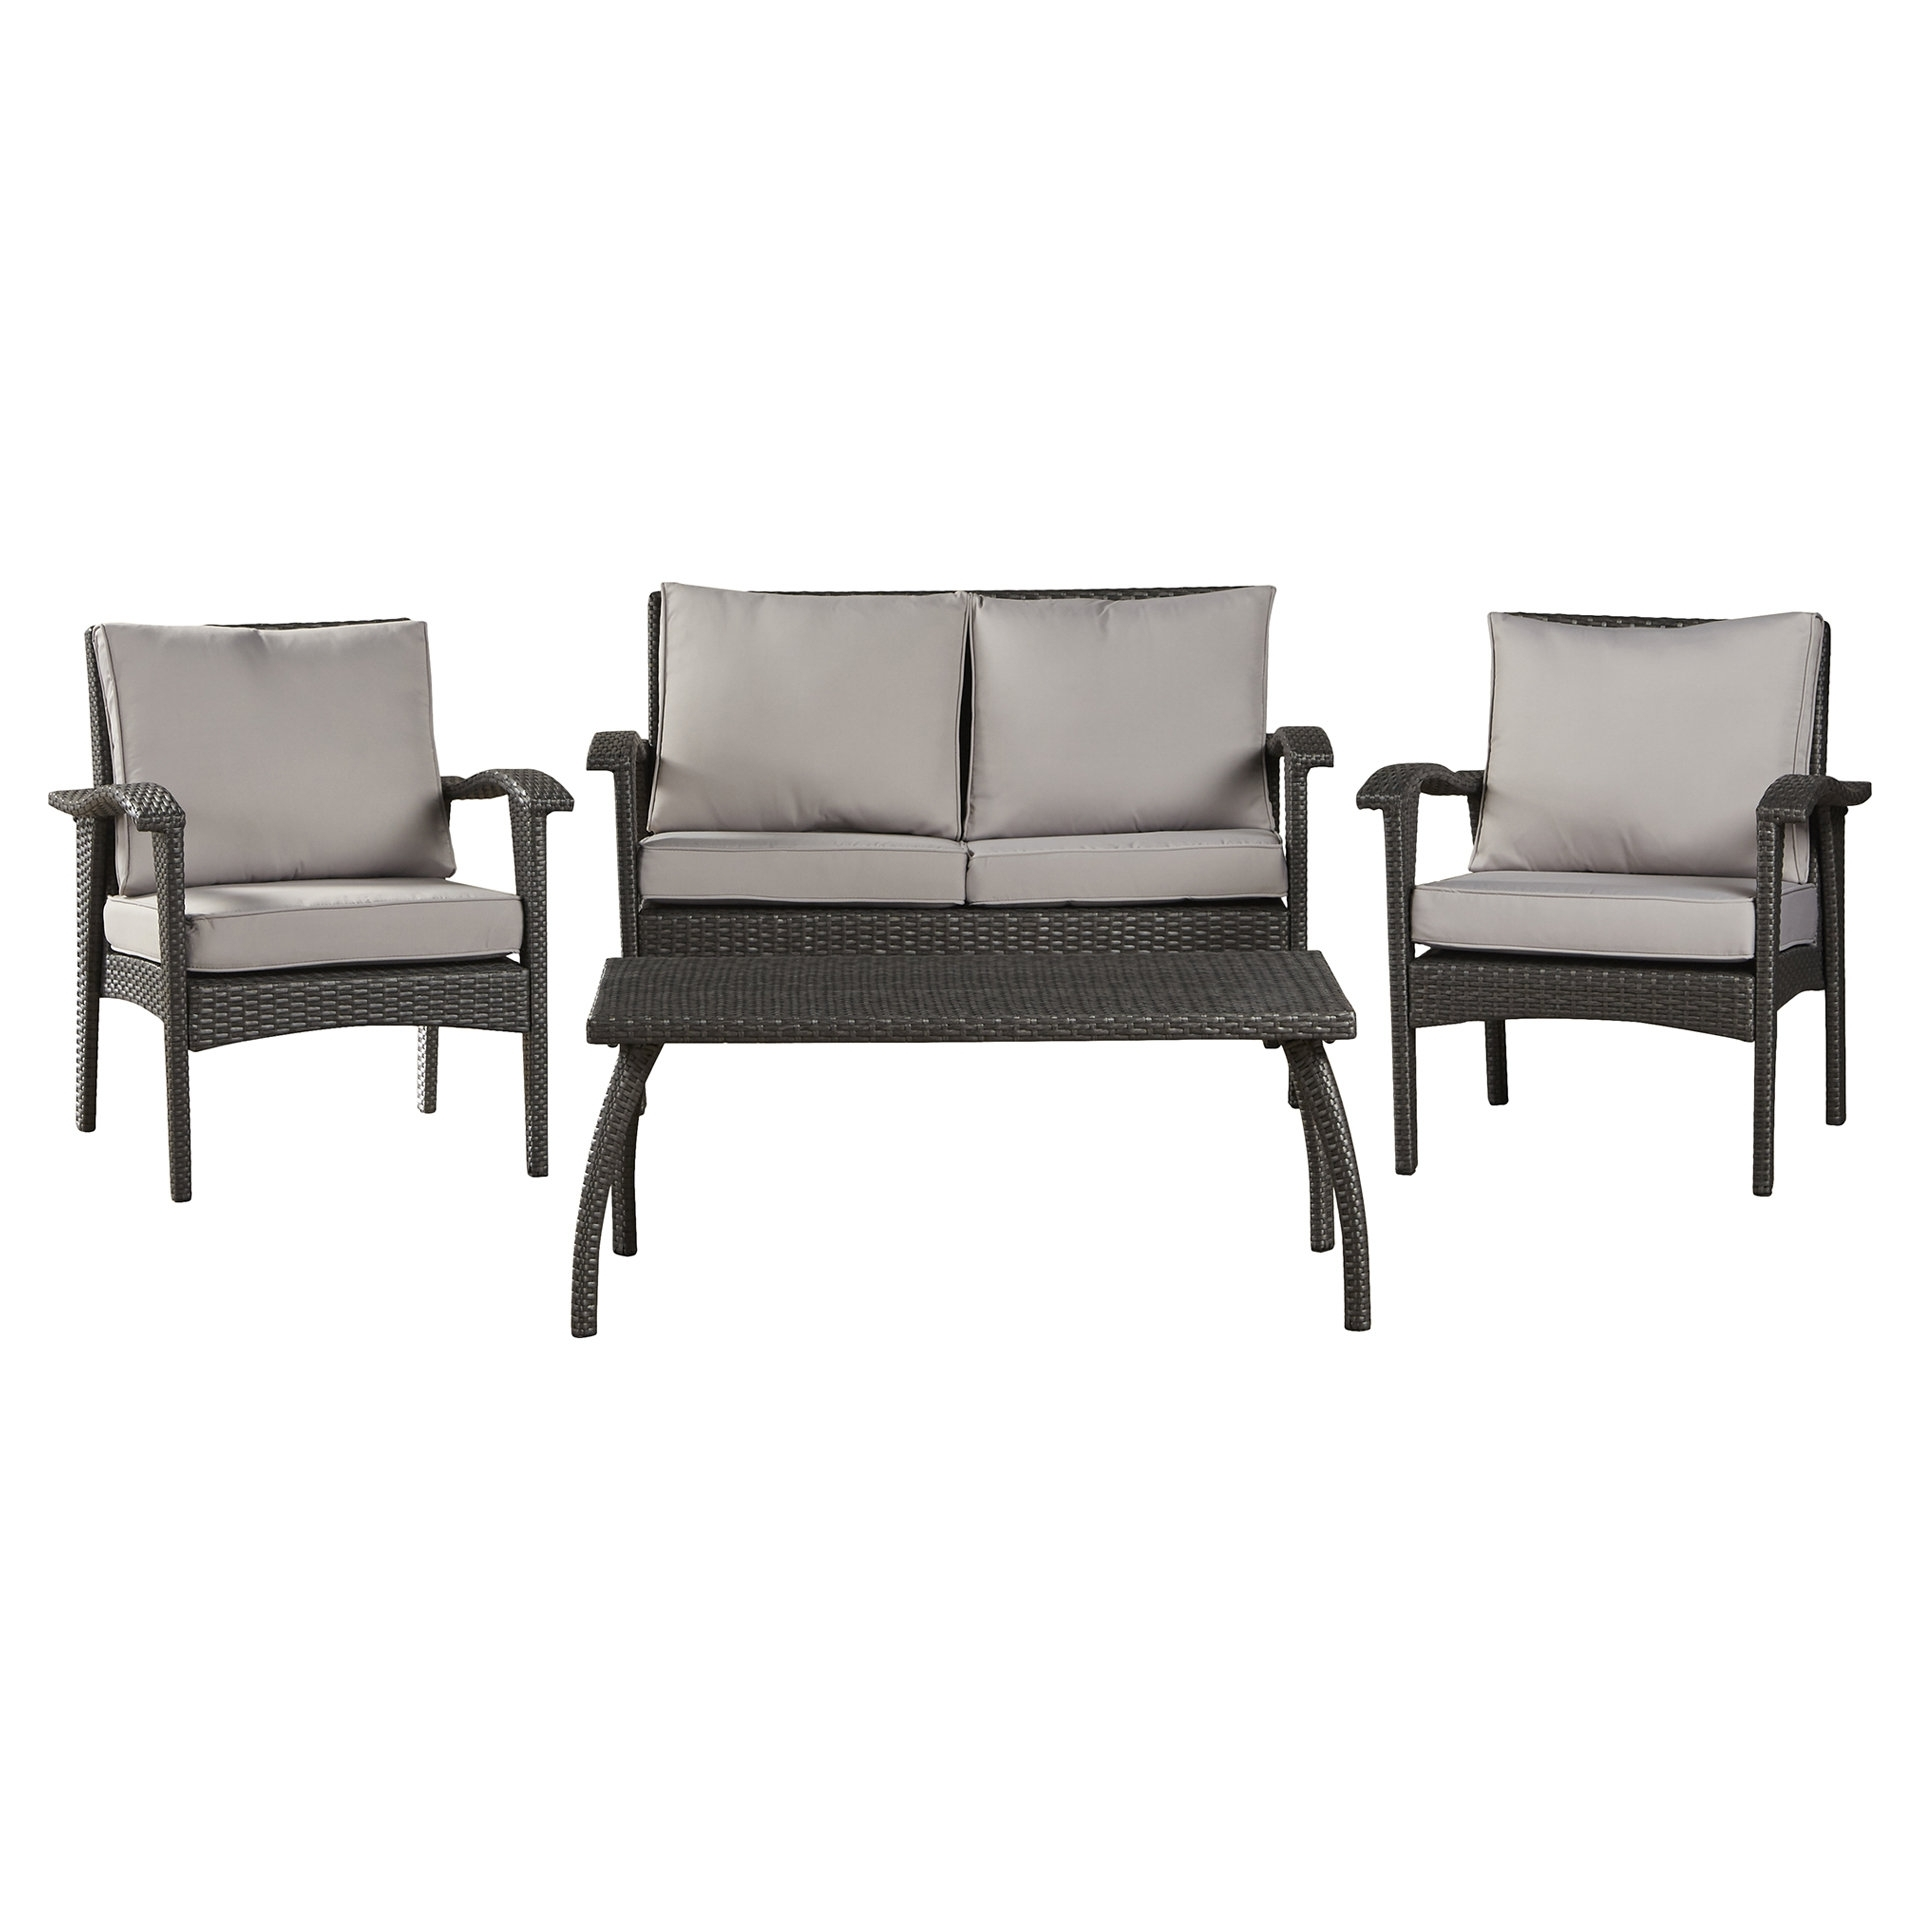 Guilford 4 Piece Rattan Sofa Set With Cushions & Reviews (Gallery 19 of 20)